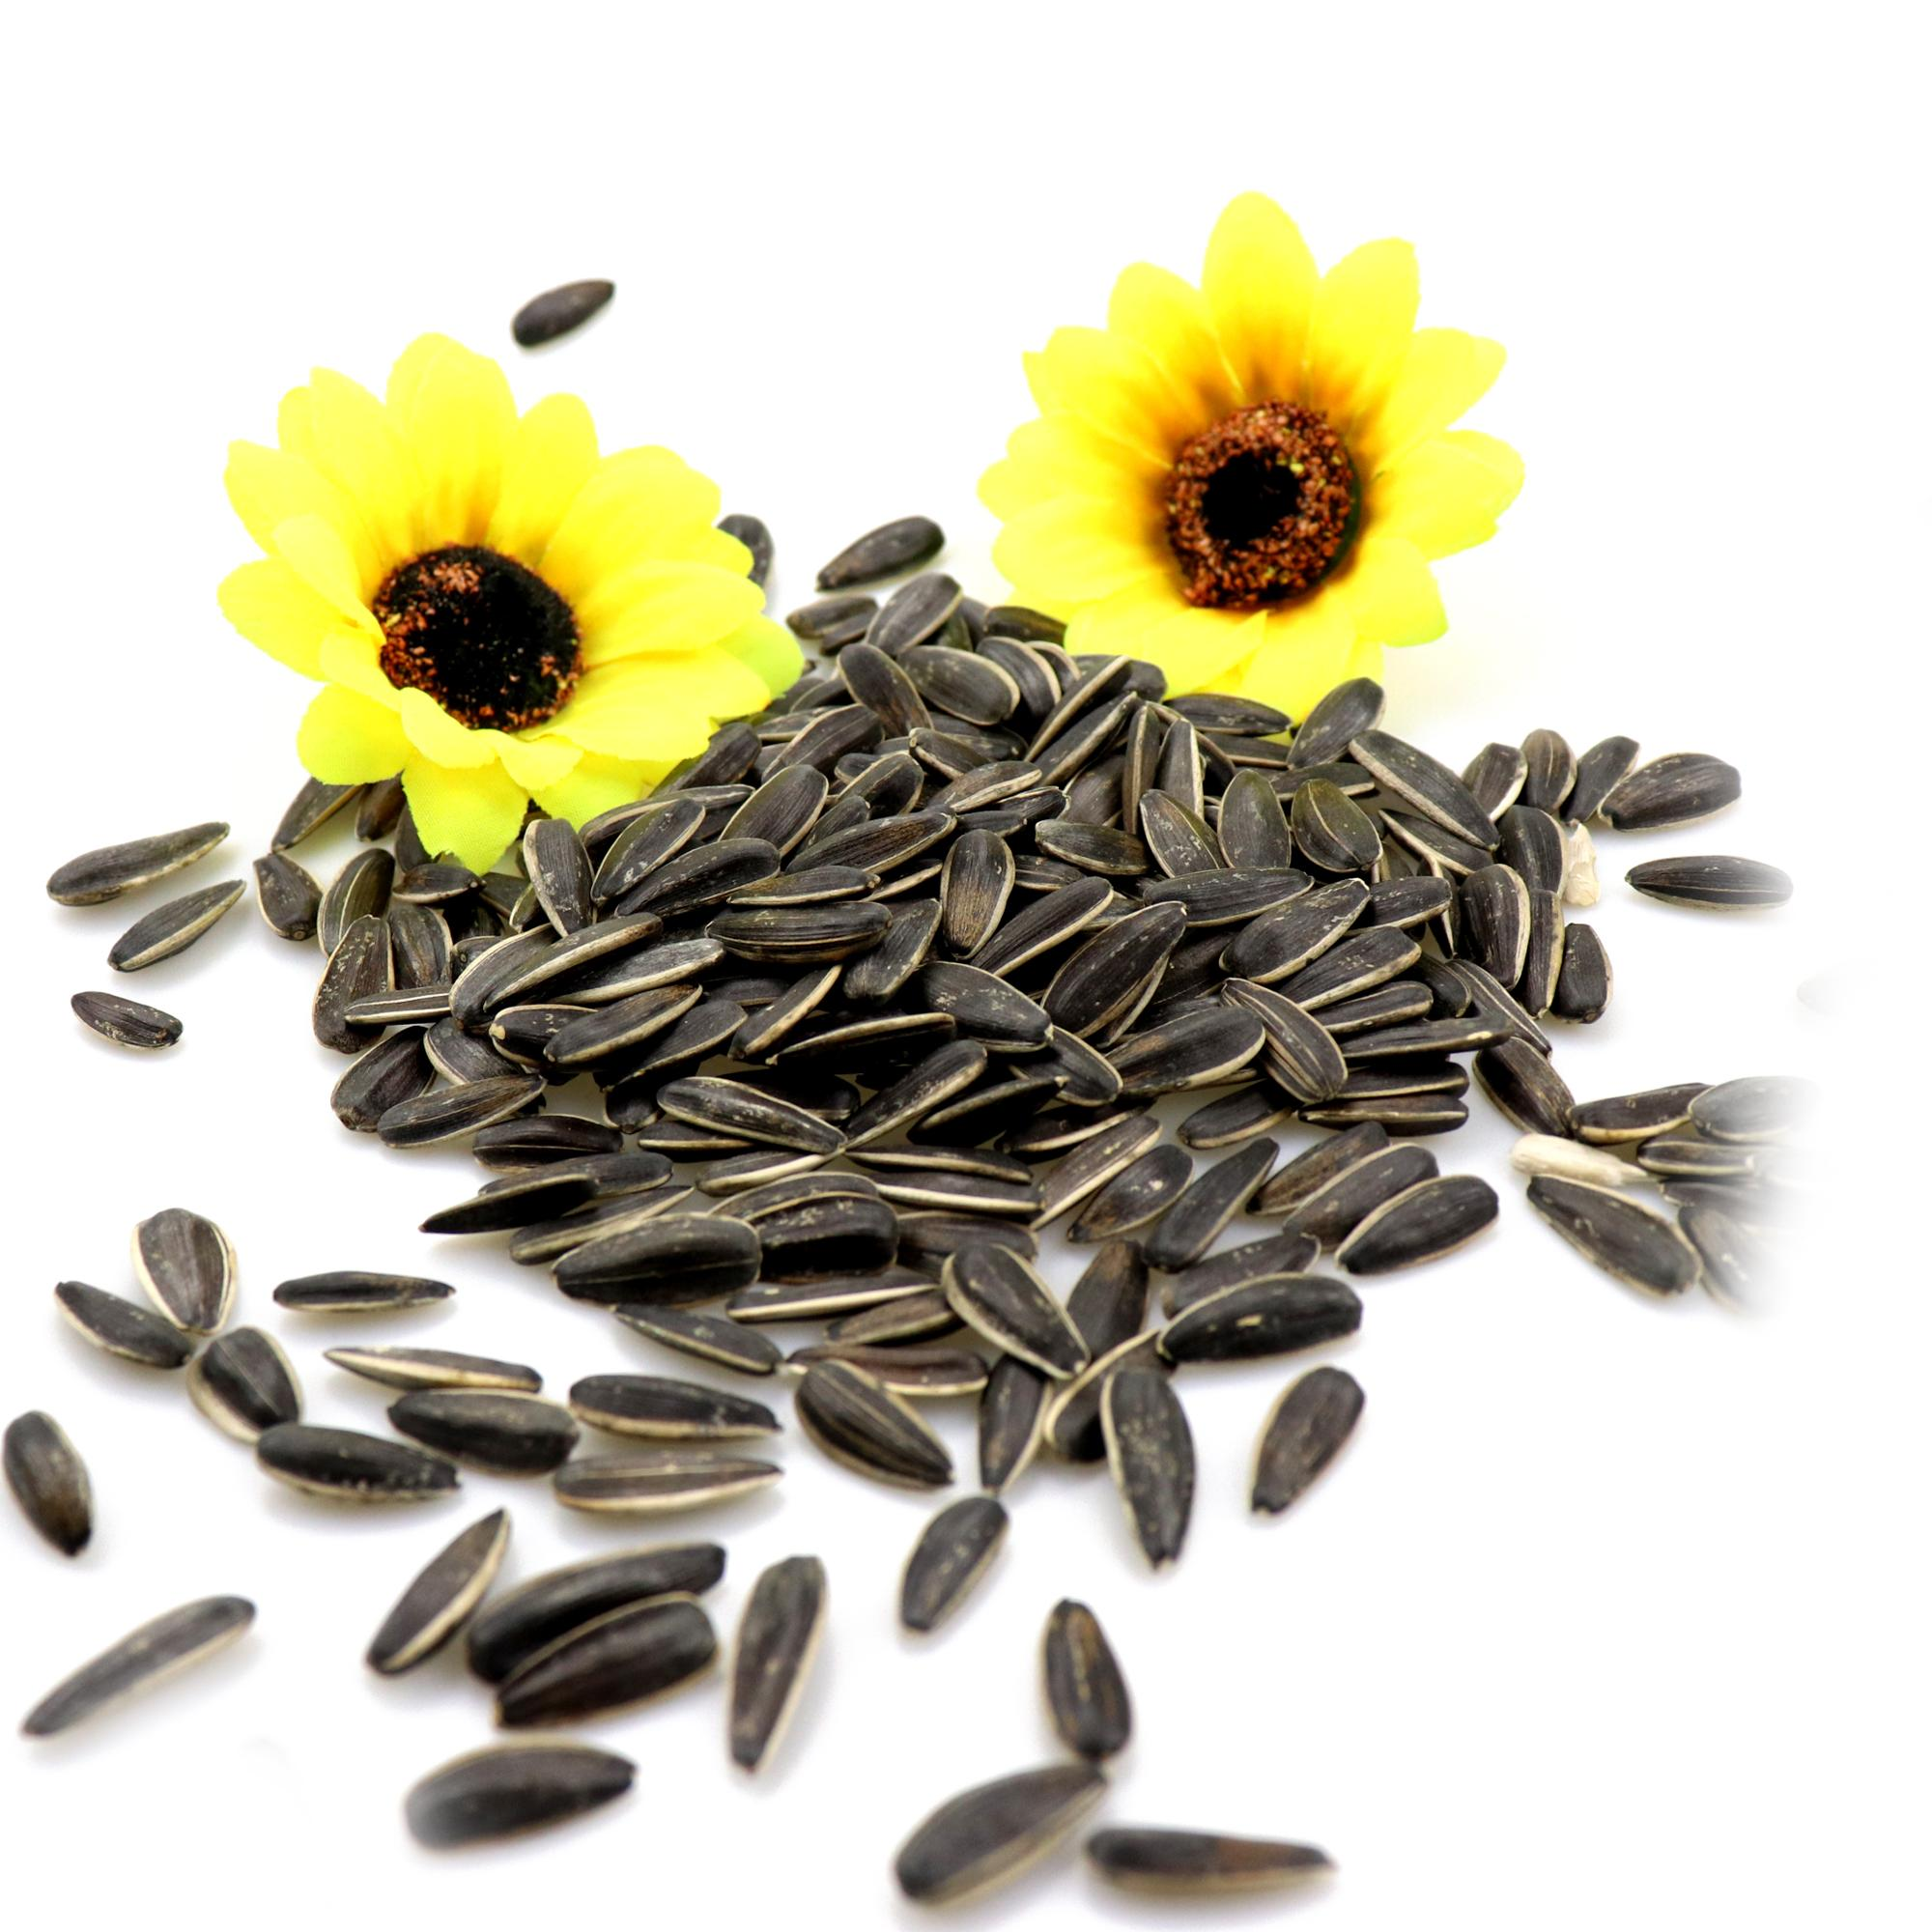 A shortage of market sunflower seeds Natural growth